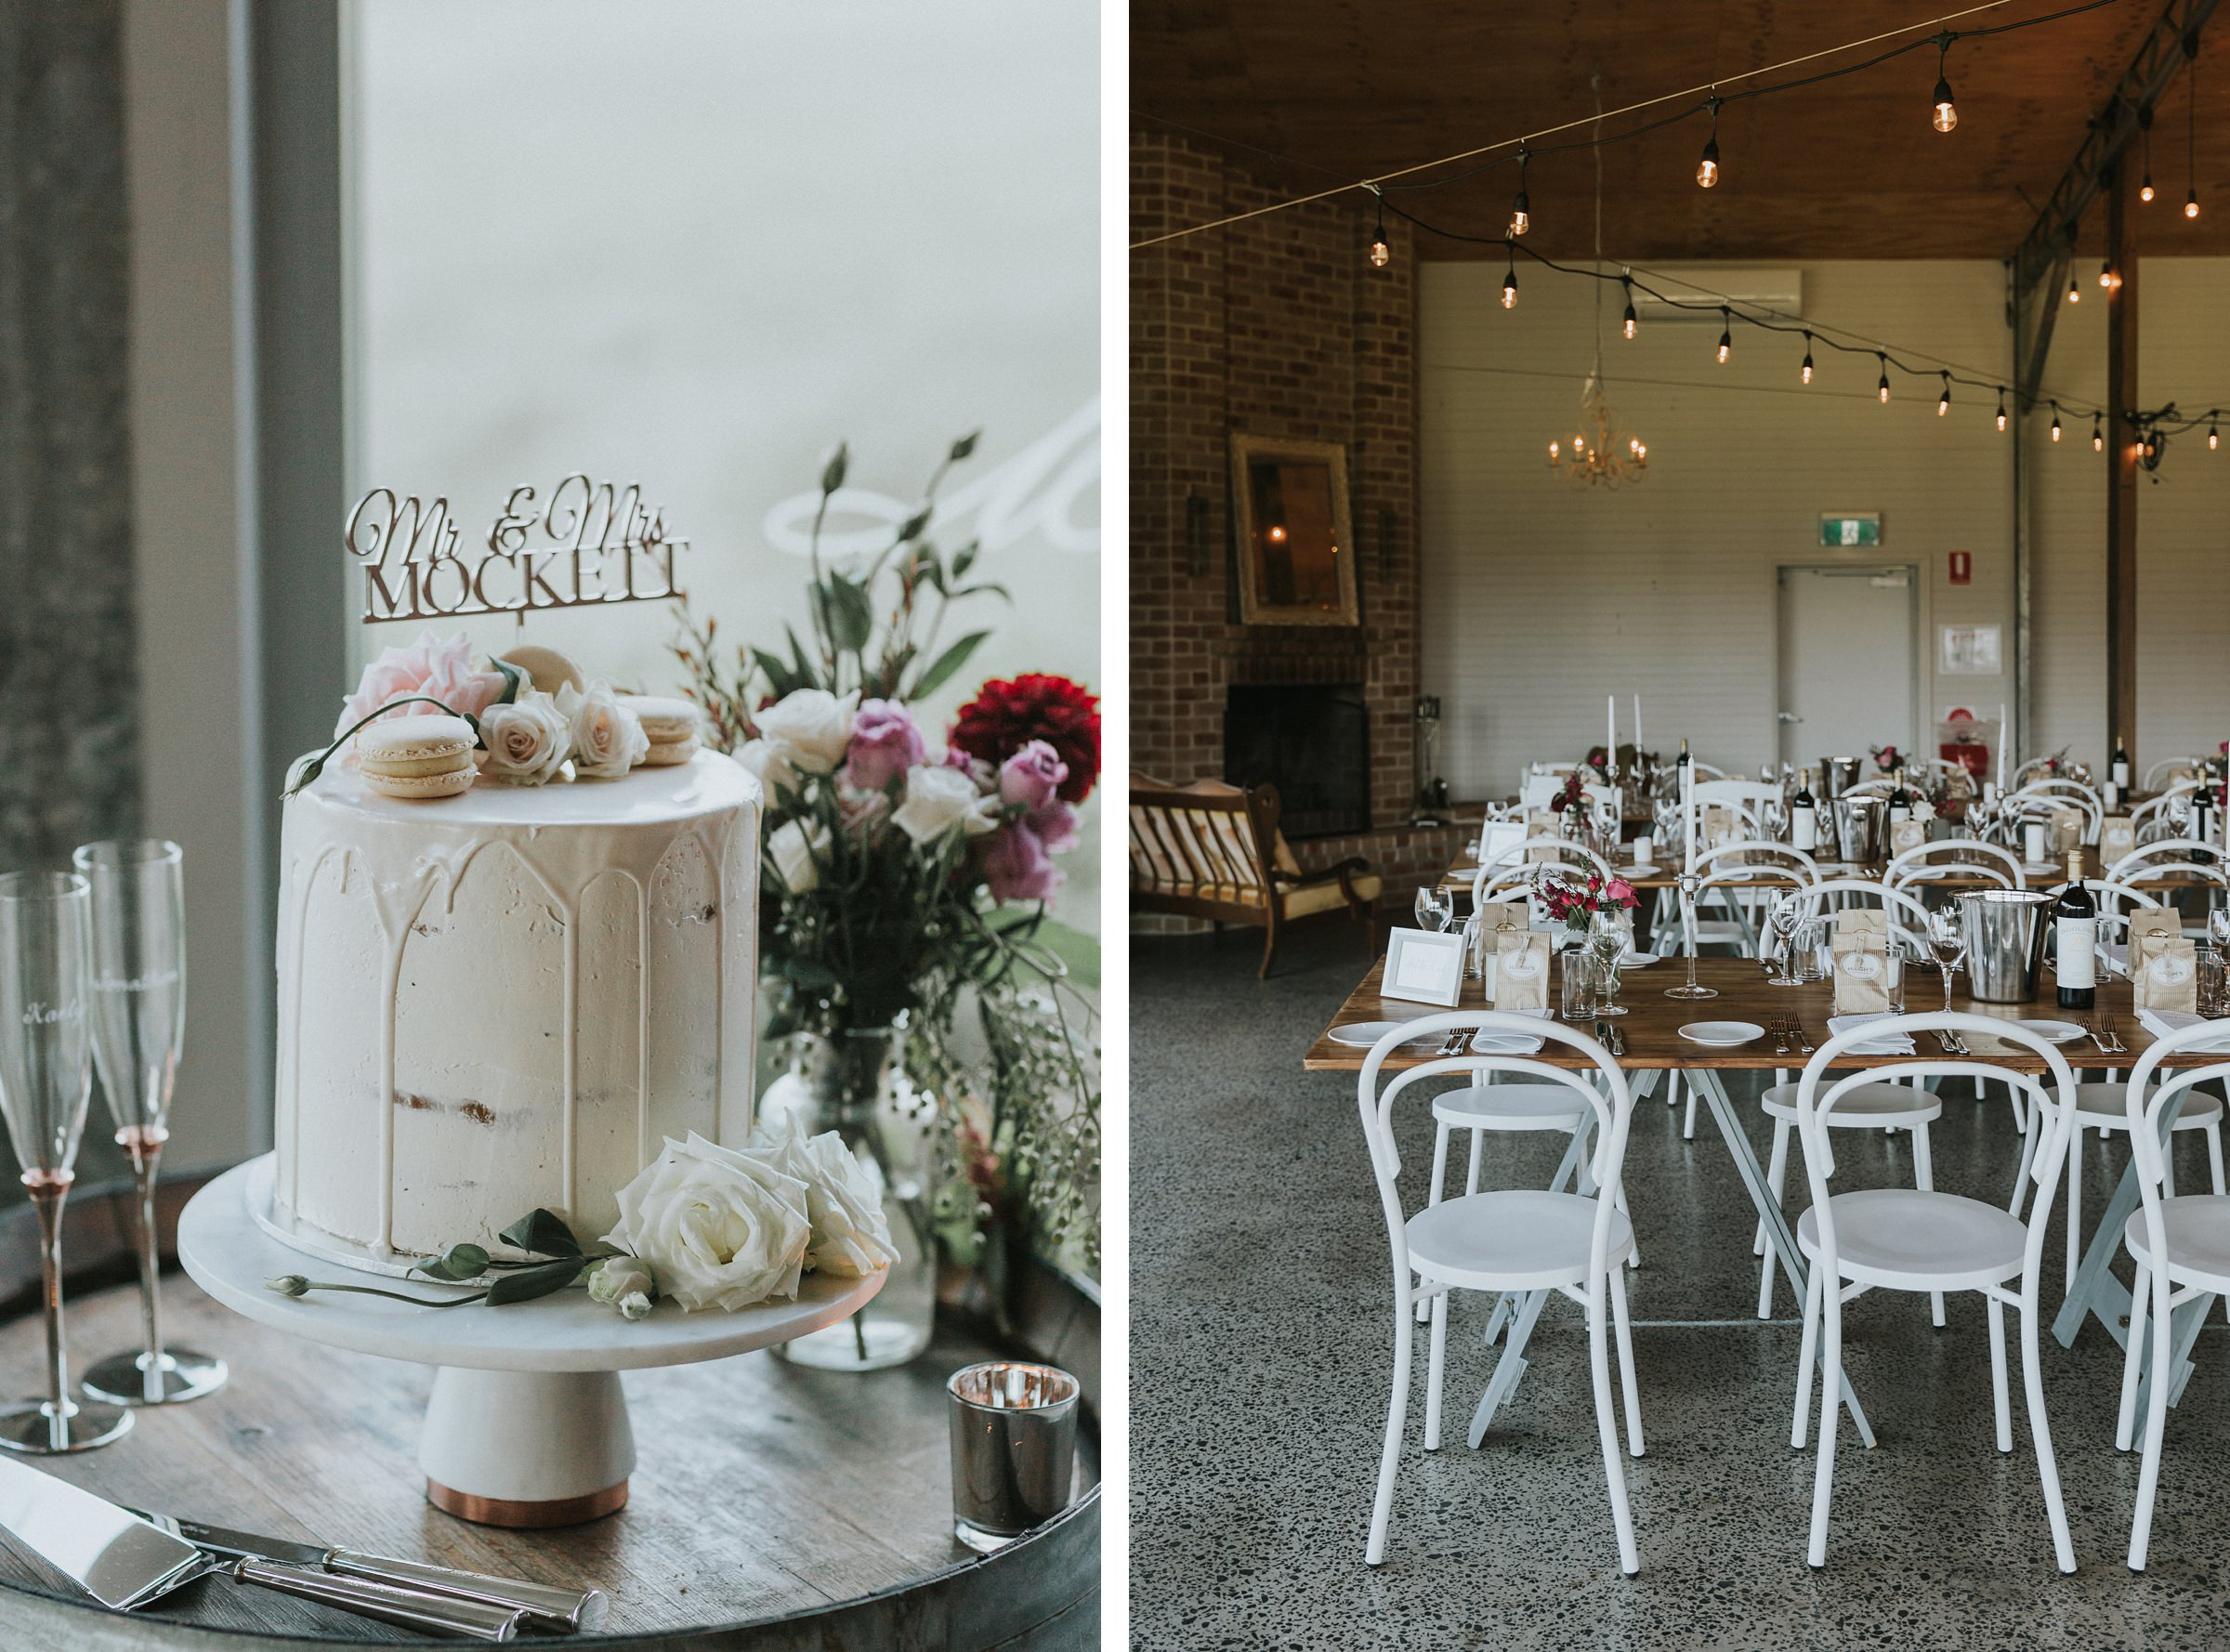 wedding cake and table styling at the barn on melross